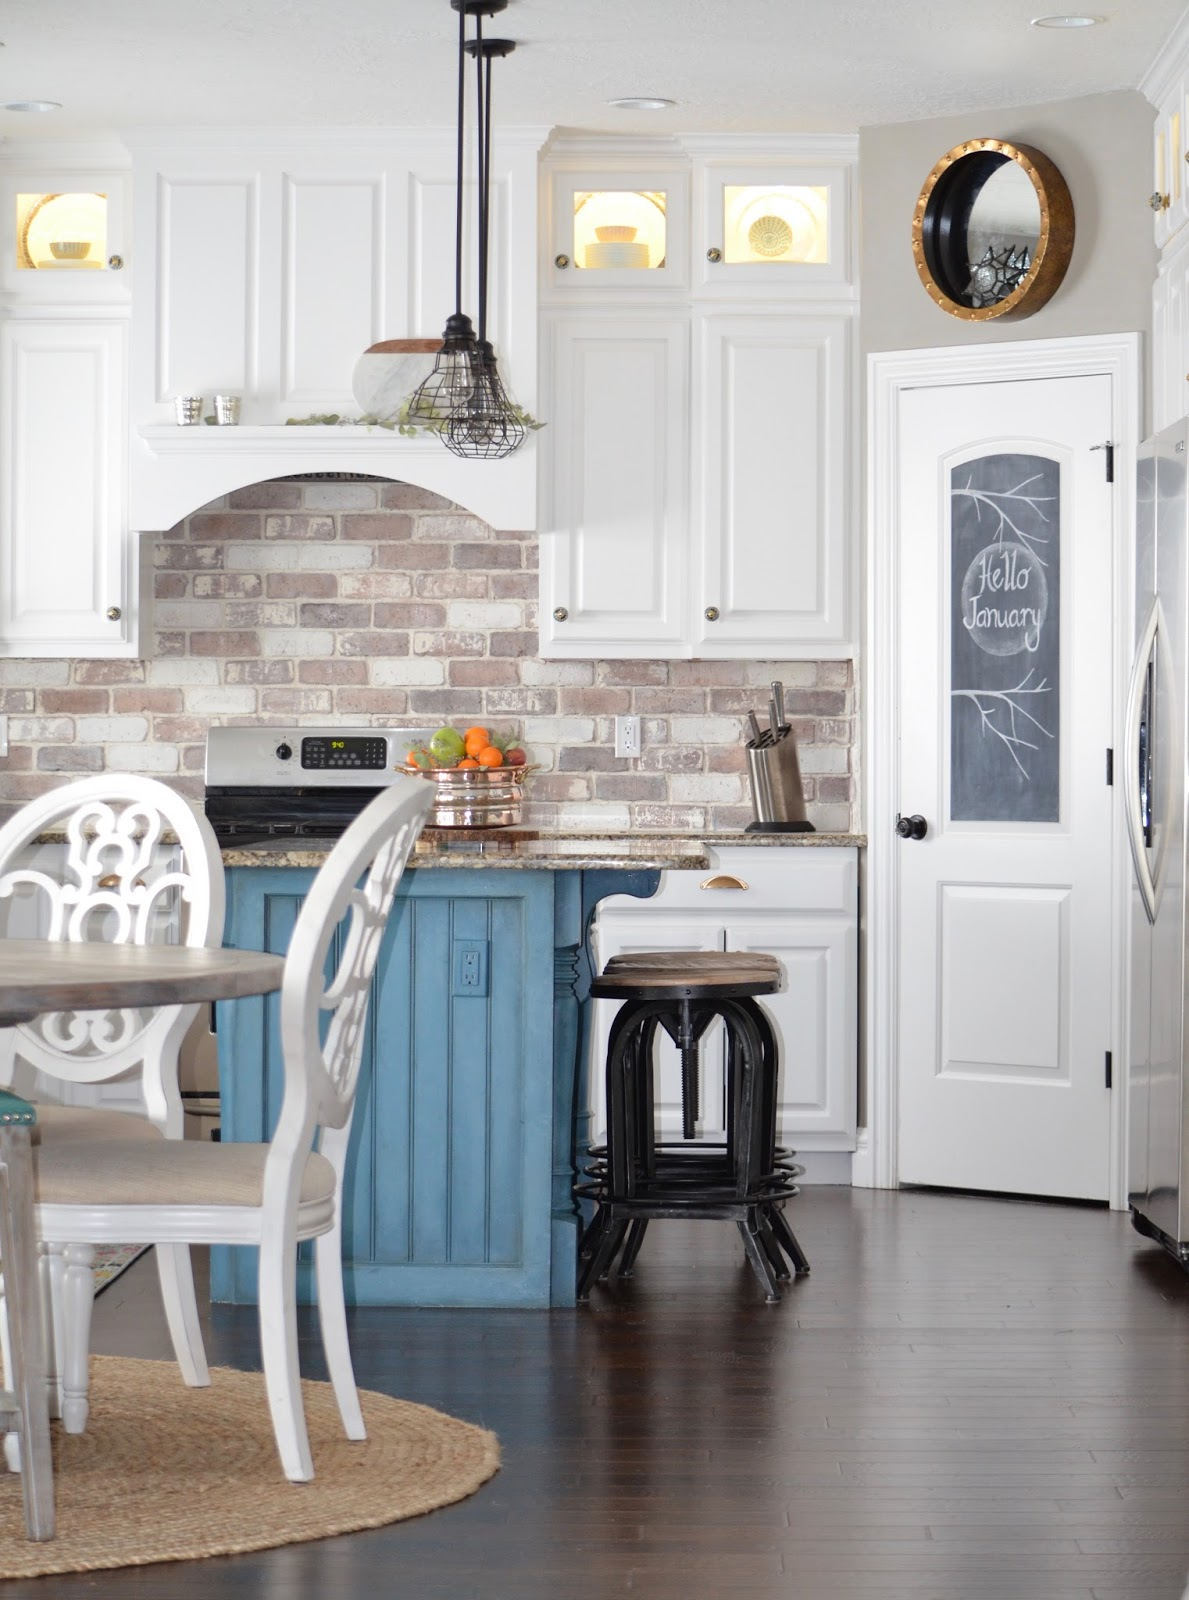 Superior Diy Brick Backsplash Tutorial, Farmhouse Kitchen, Brick Veneer